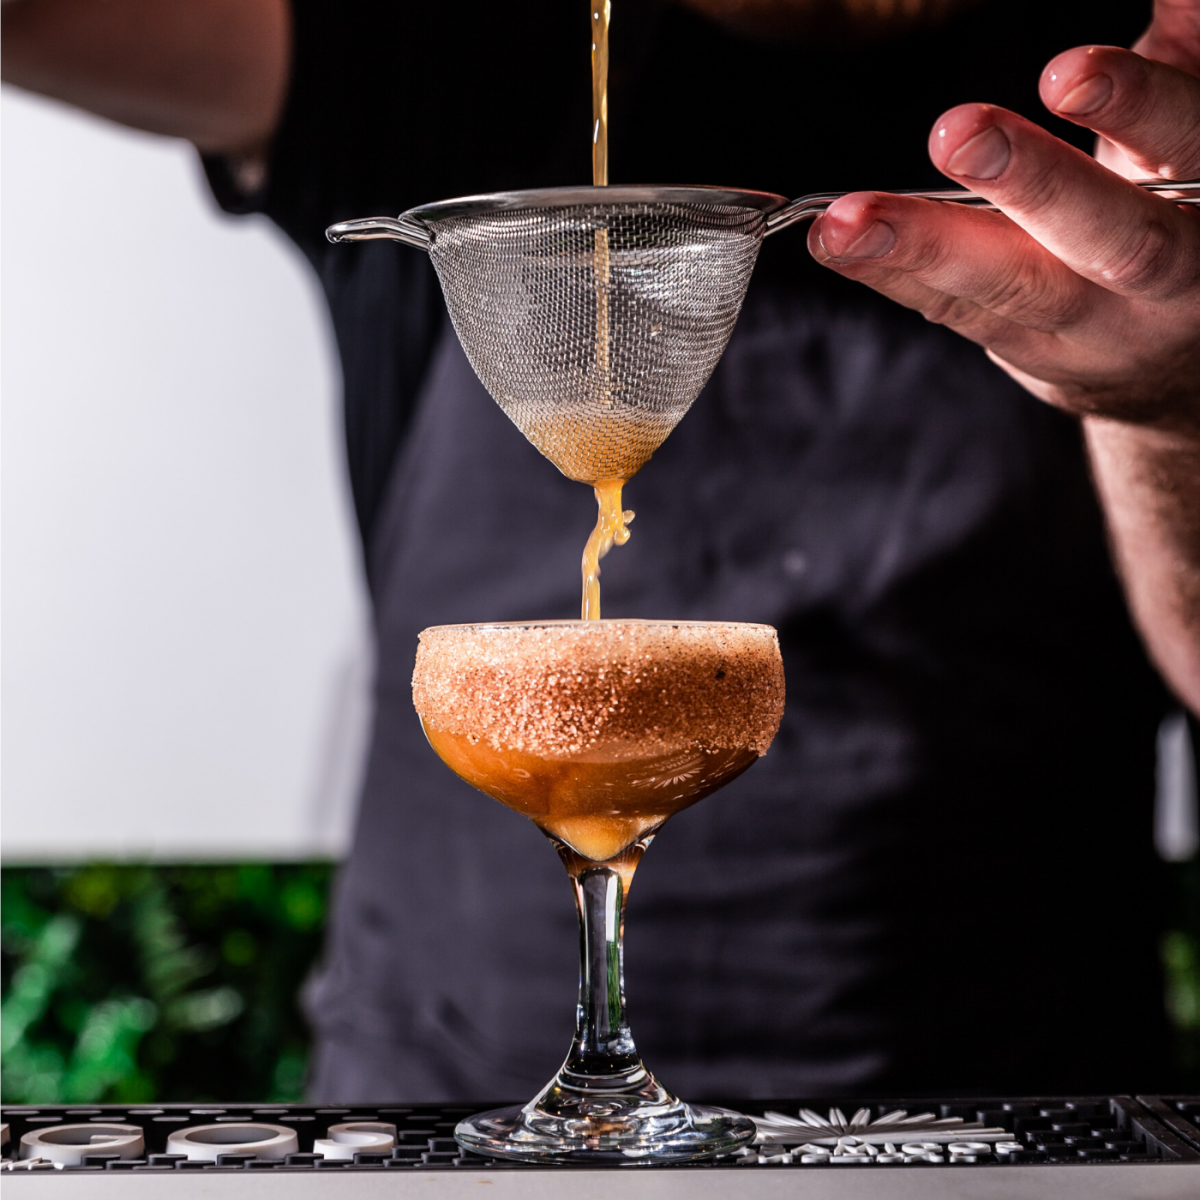 Mixing up a rum and coke is fairly straightforward, but preparing an obscure craft cocktail takes memory, skill, and practice.